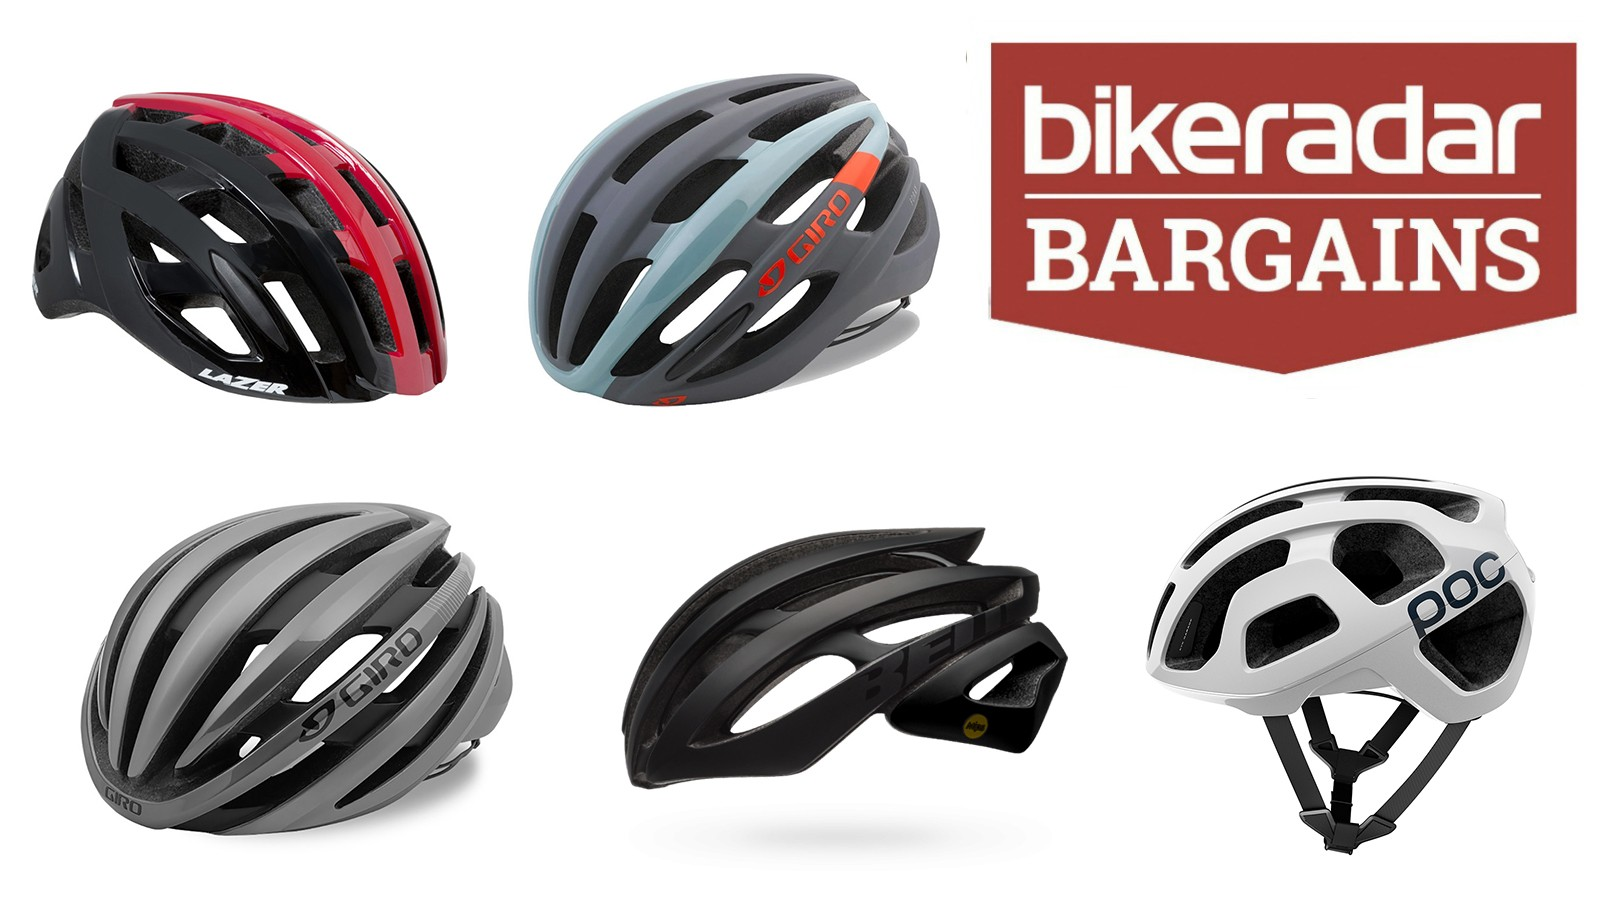 For this week's edition of BikeRadar Bargains we've found five great deals on some of our favourite road helmets